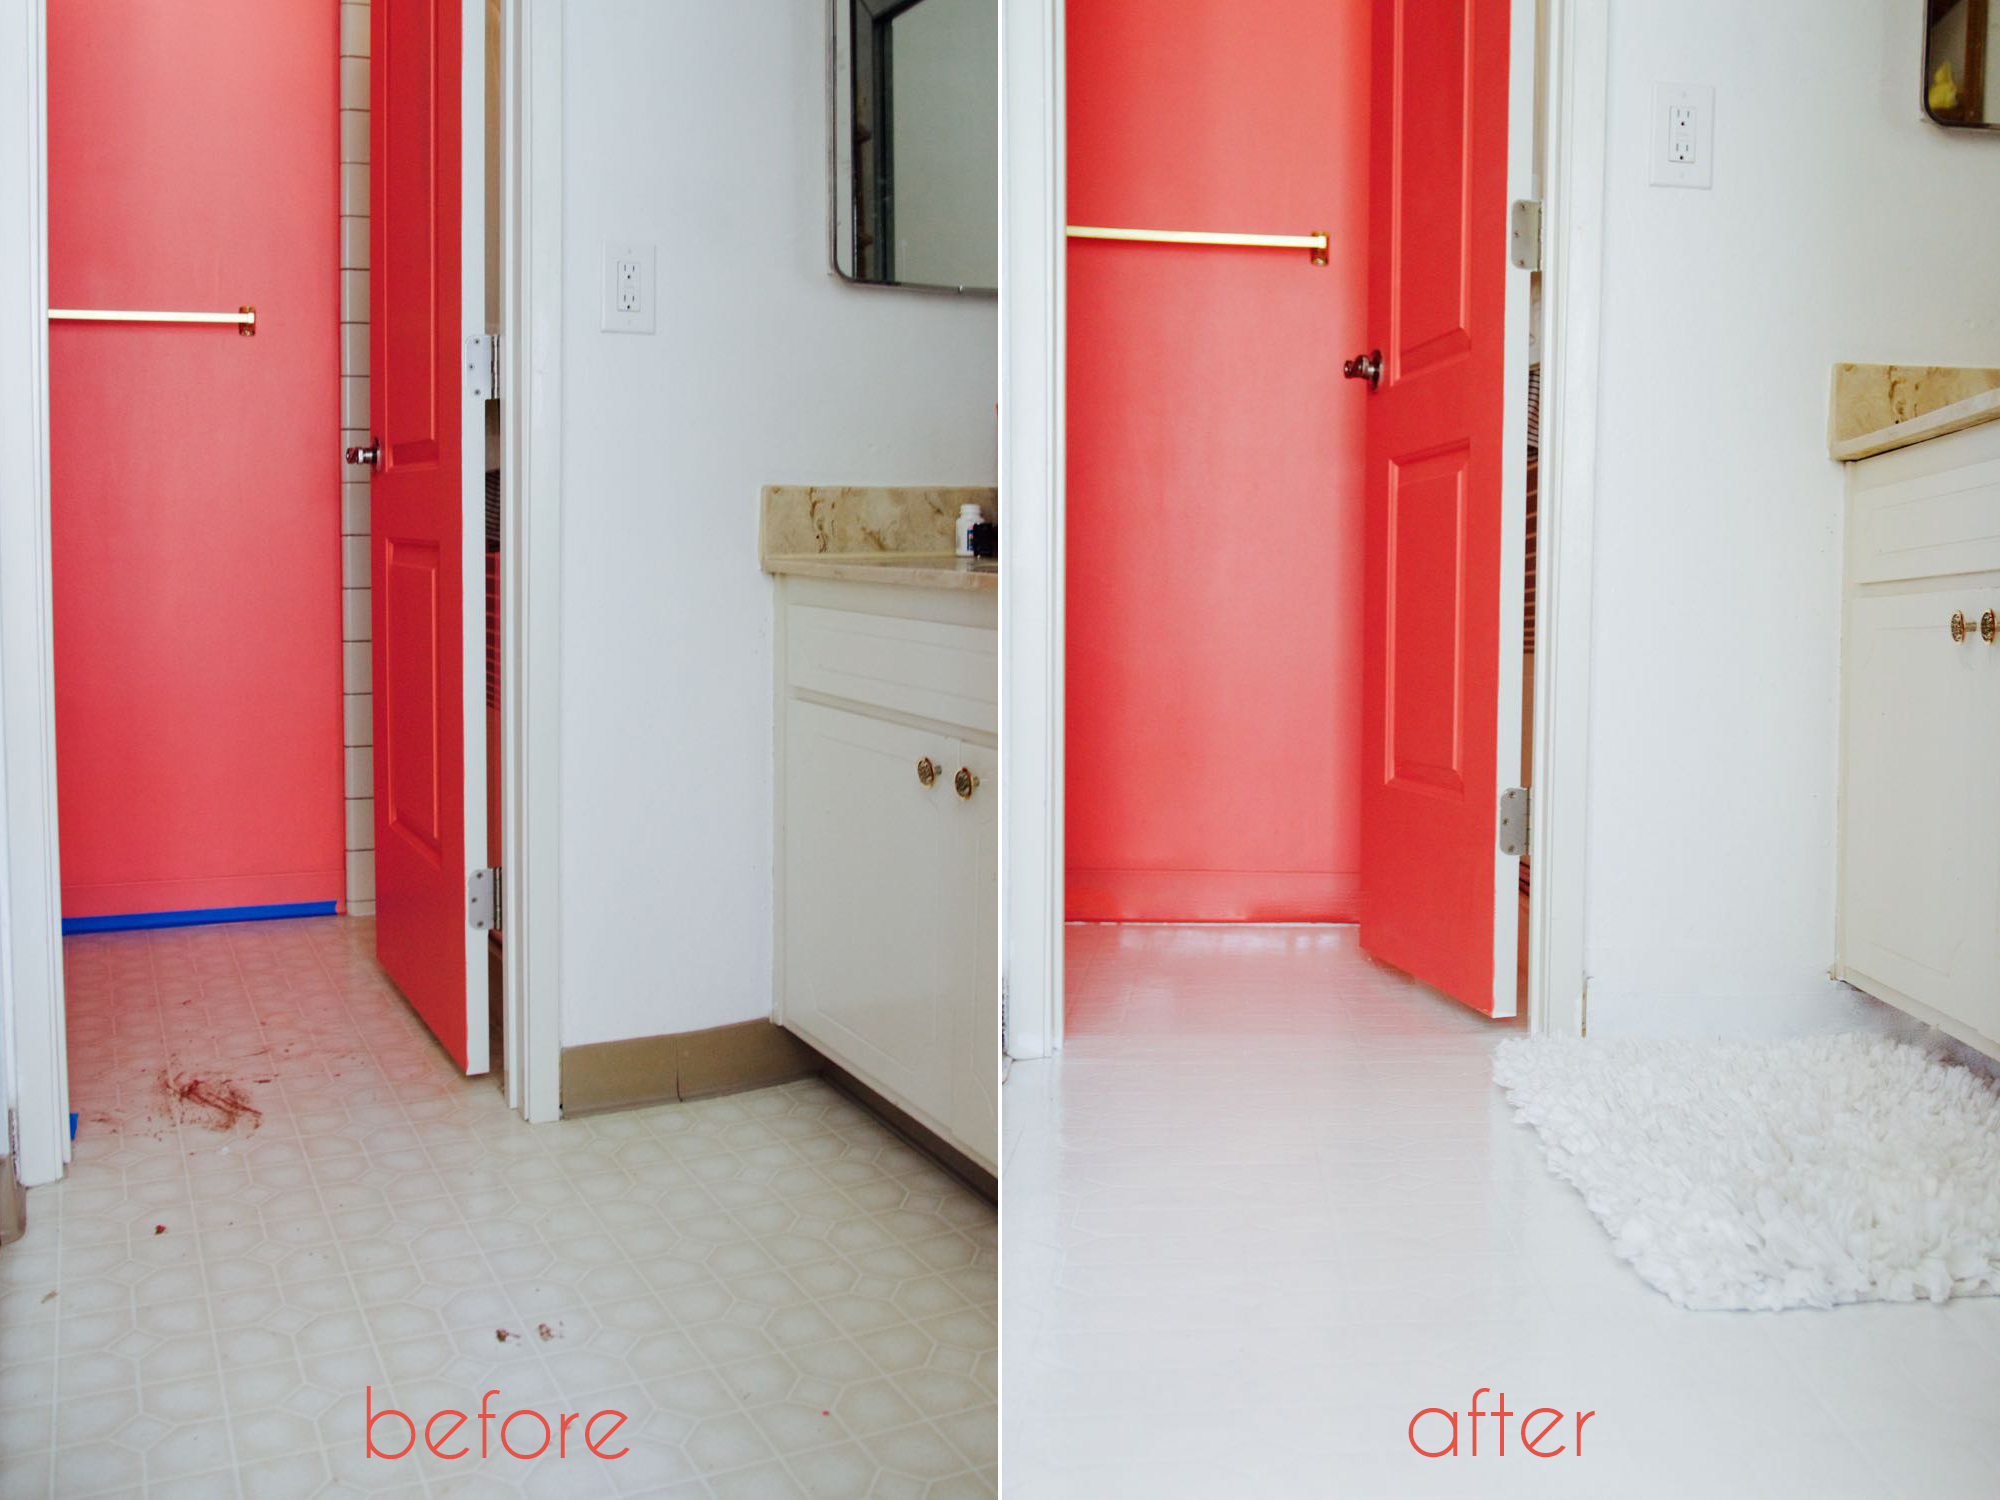 a bathroom tile makeoverwith paint – ramshackle glam